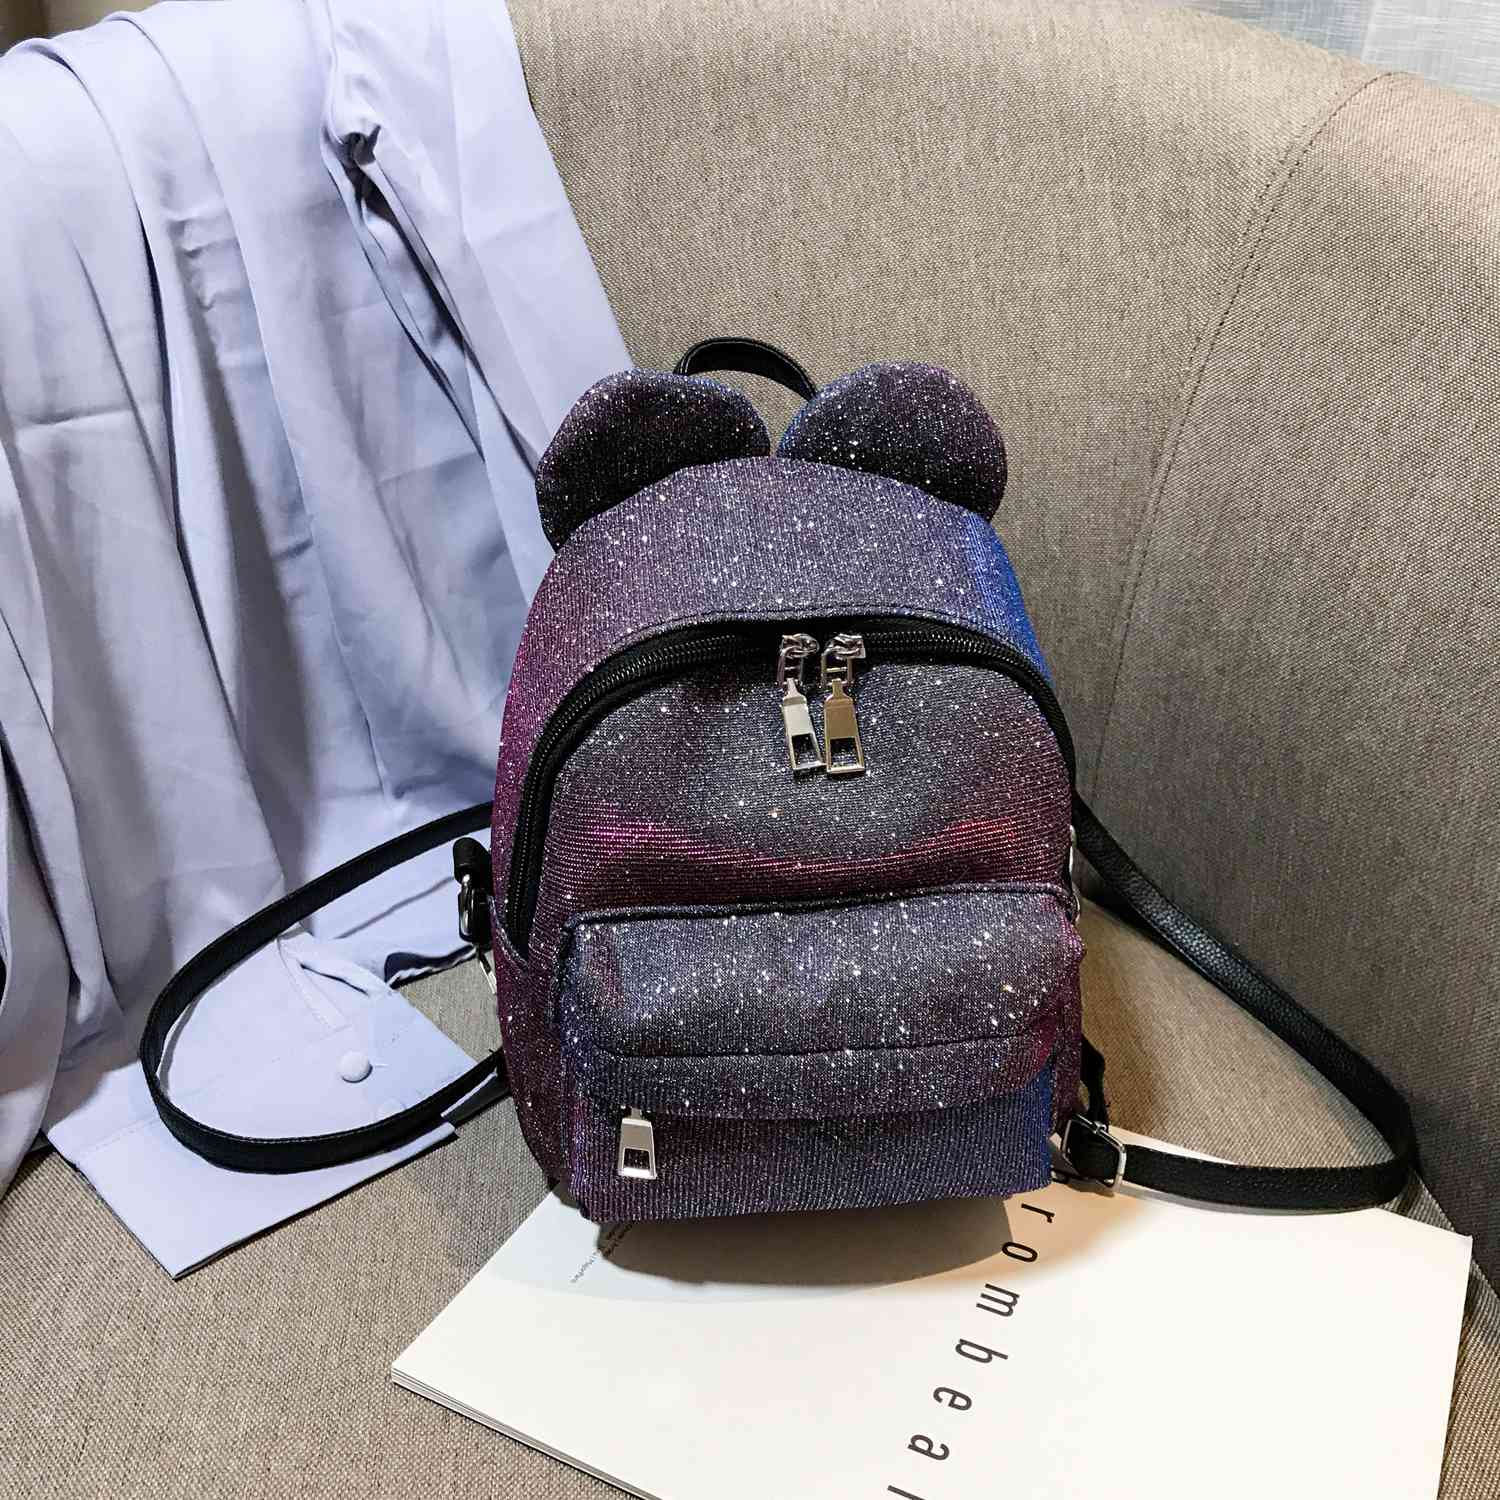 FGGS-Portable Women Sequins Backpack Girls Mini School Bags For Teenage Girls Backpack Women Small Travel BagFGGS-Portable Women Sequins Backpack Girls Mini School Bags For Teenage Girls Backpack Women Small Travel Bag